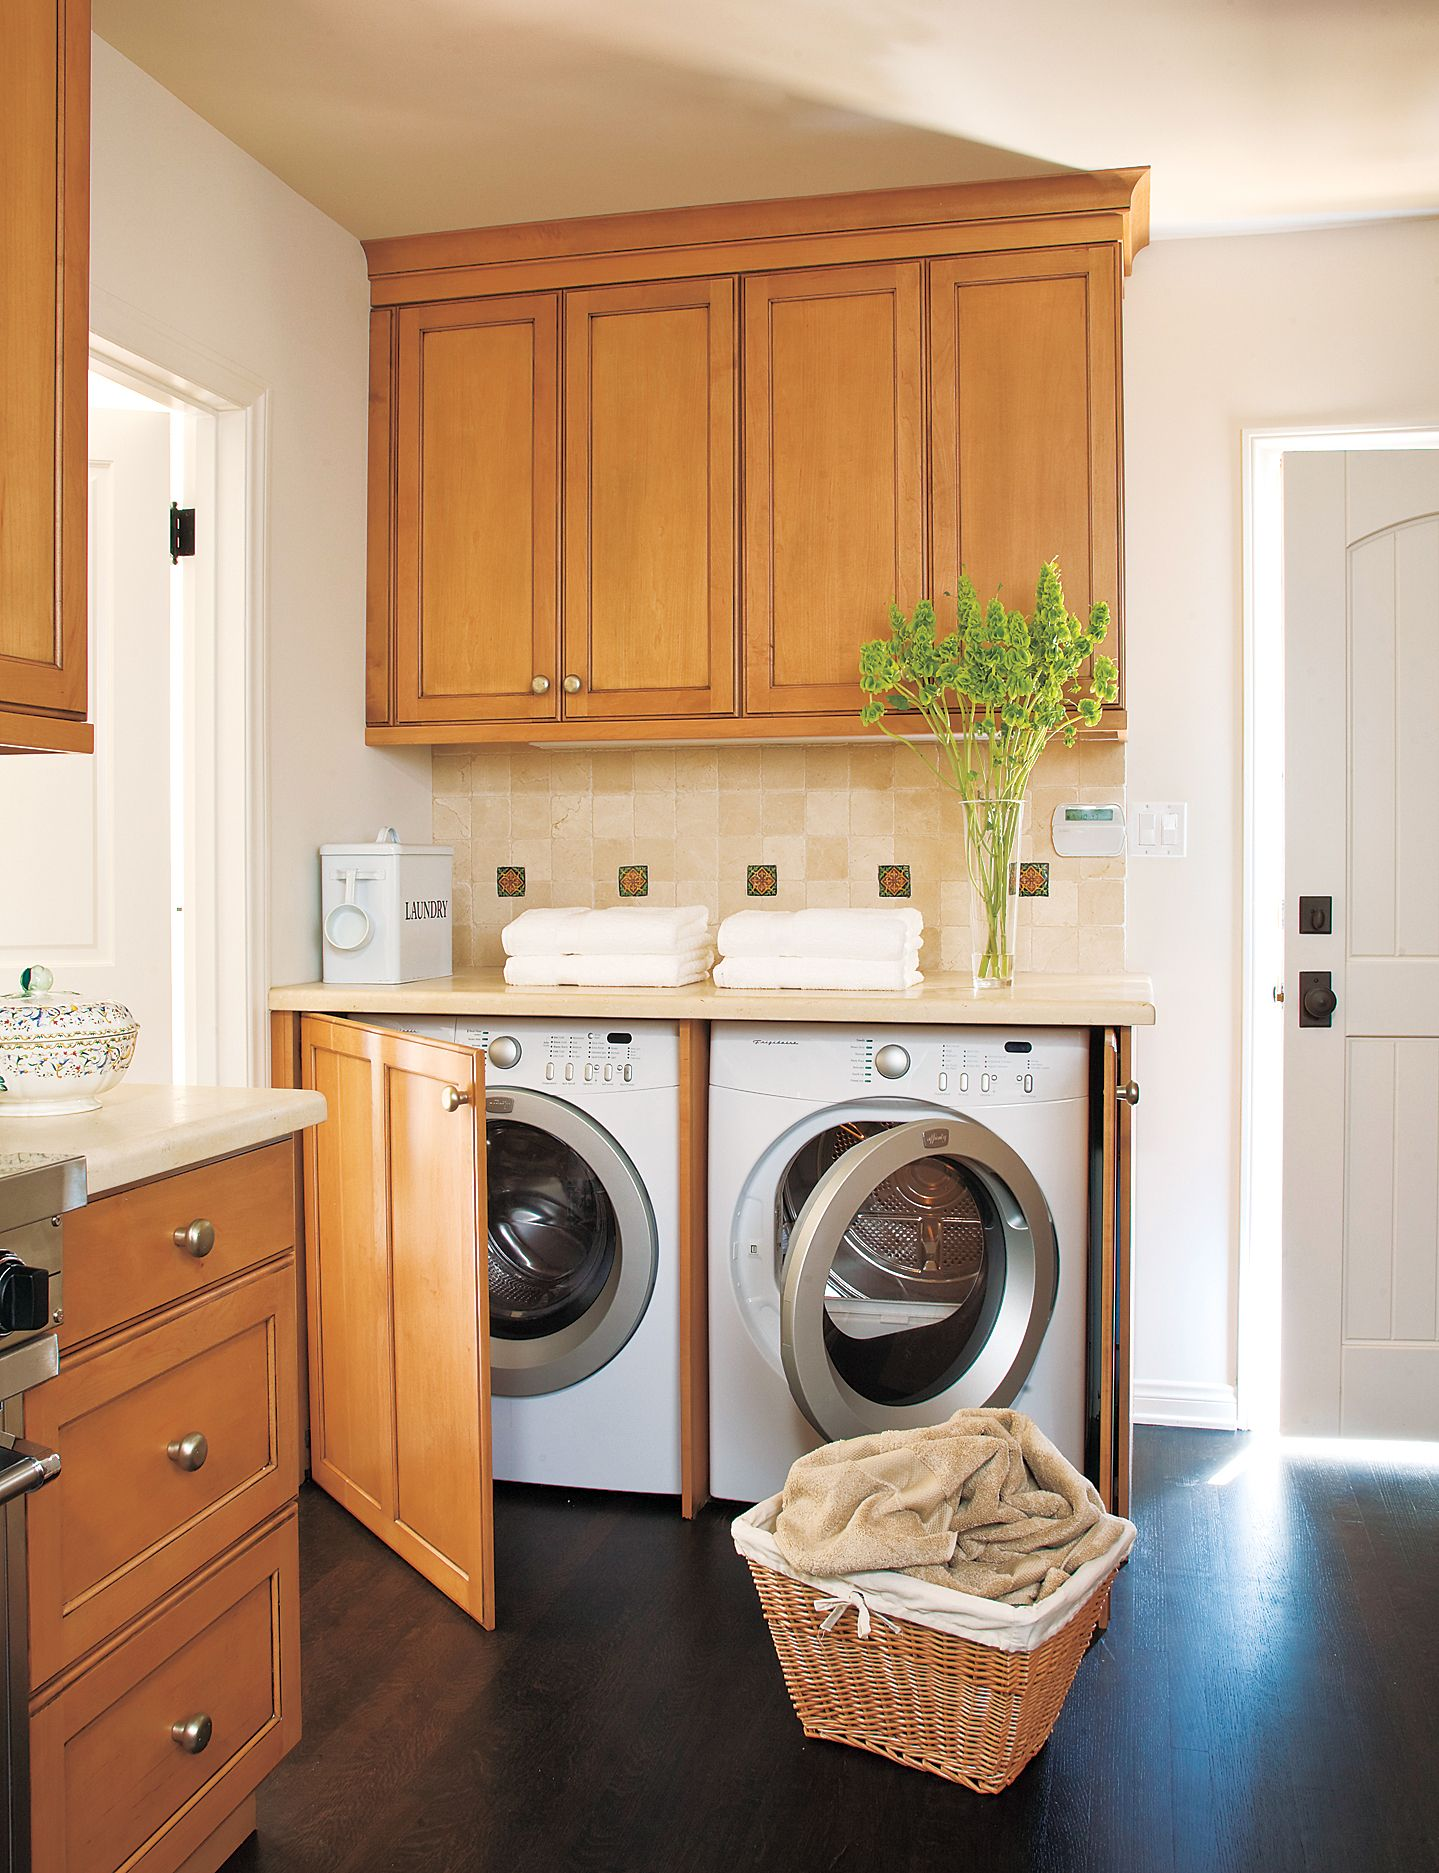 26 Ideas for a Fully Loaded Laundry Room in 26  Washer and